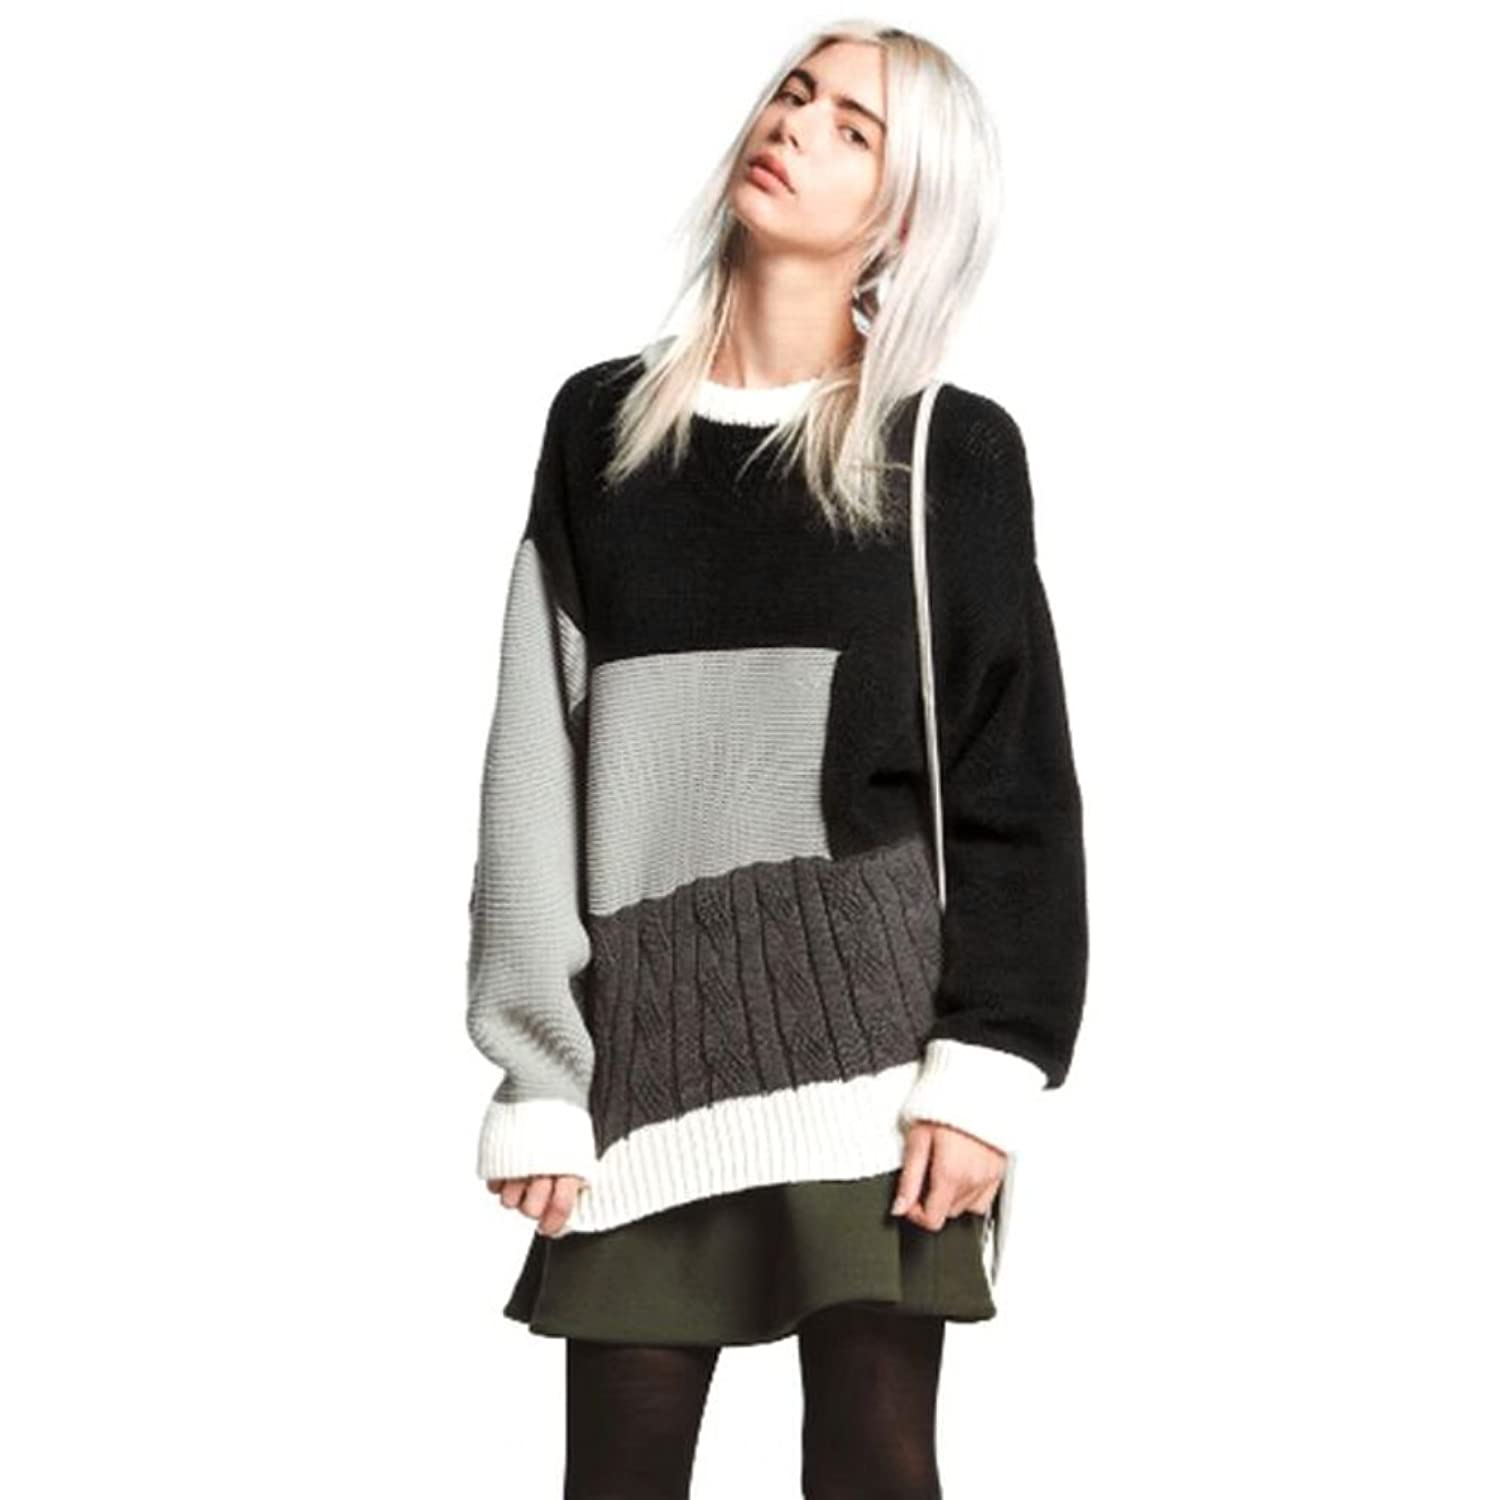 Timall Fashion Women O-NECK Long Sleeve Jumper Geometric Pullover Sweater